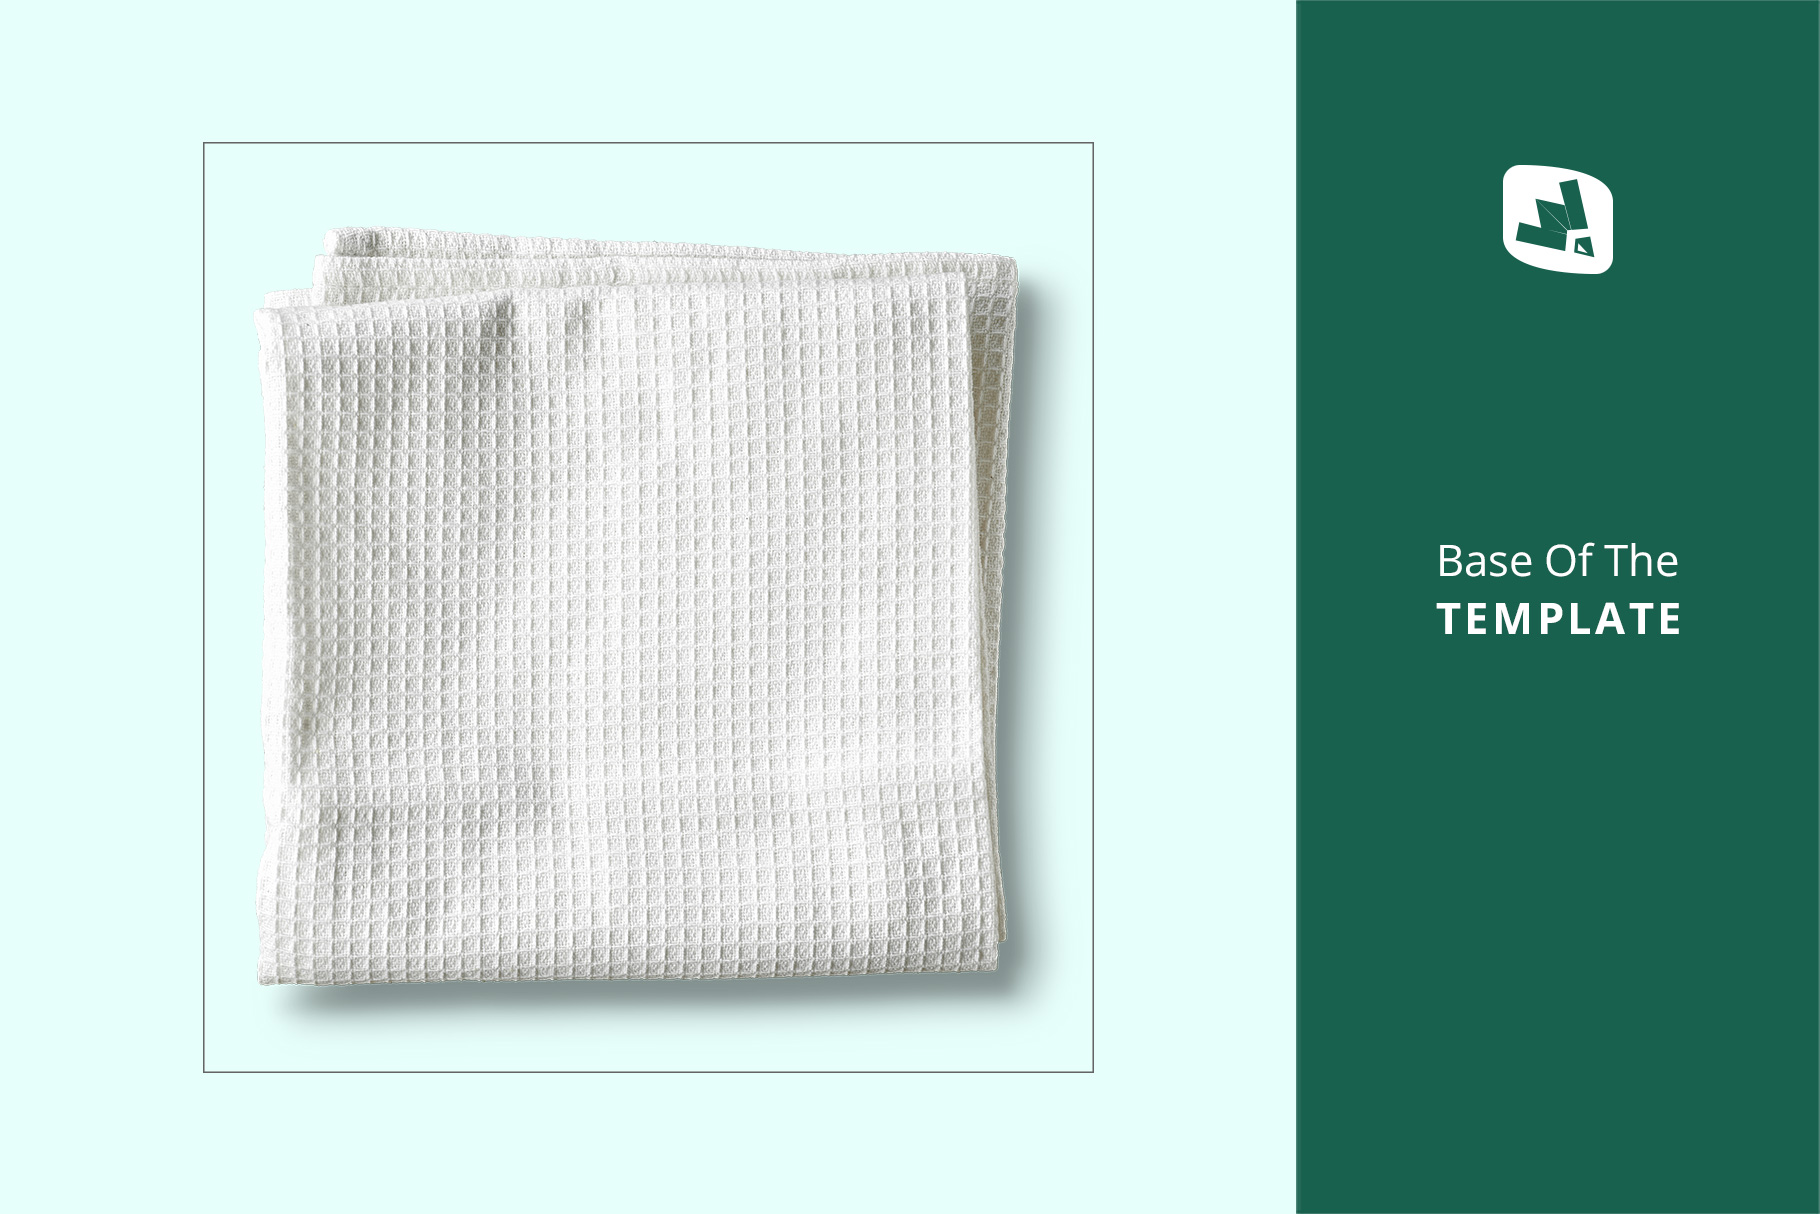 base image of the top view kitchen towel mockup